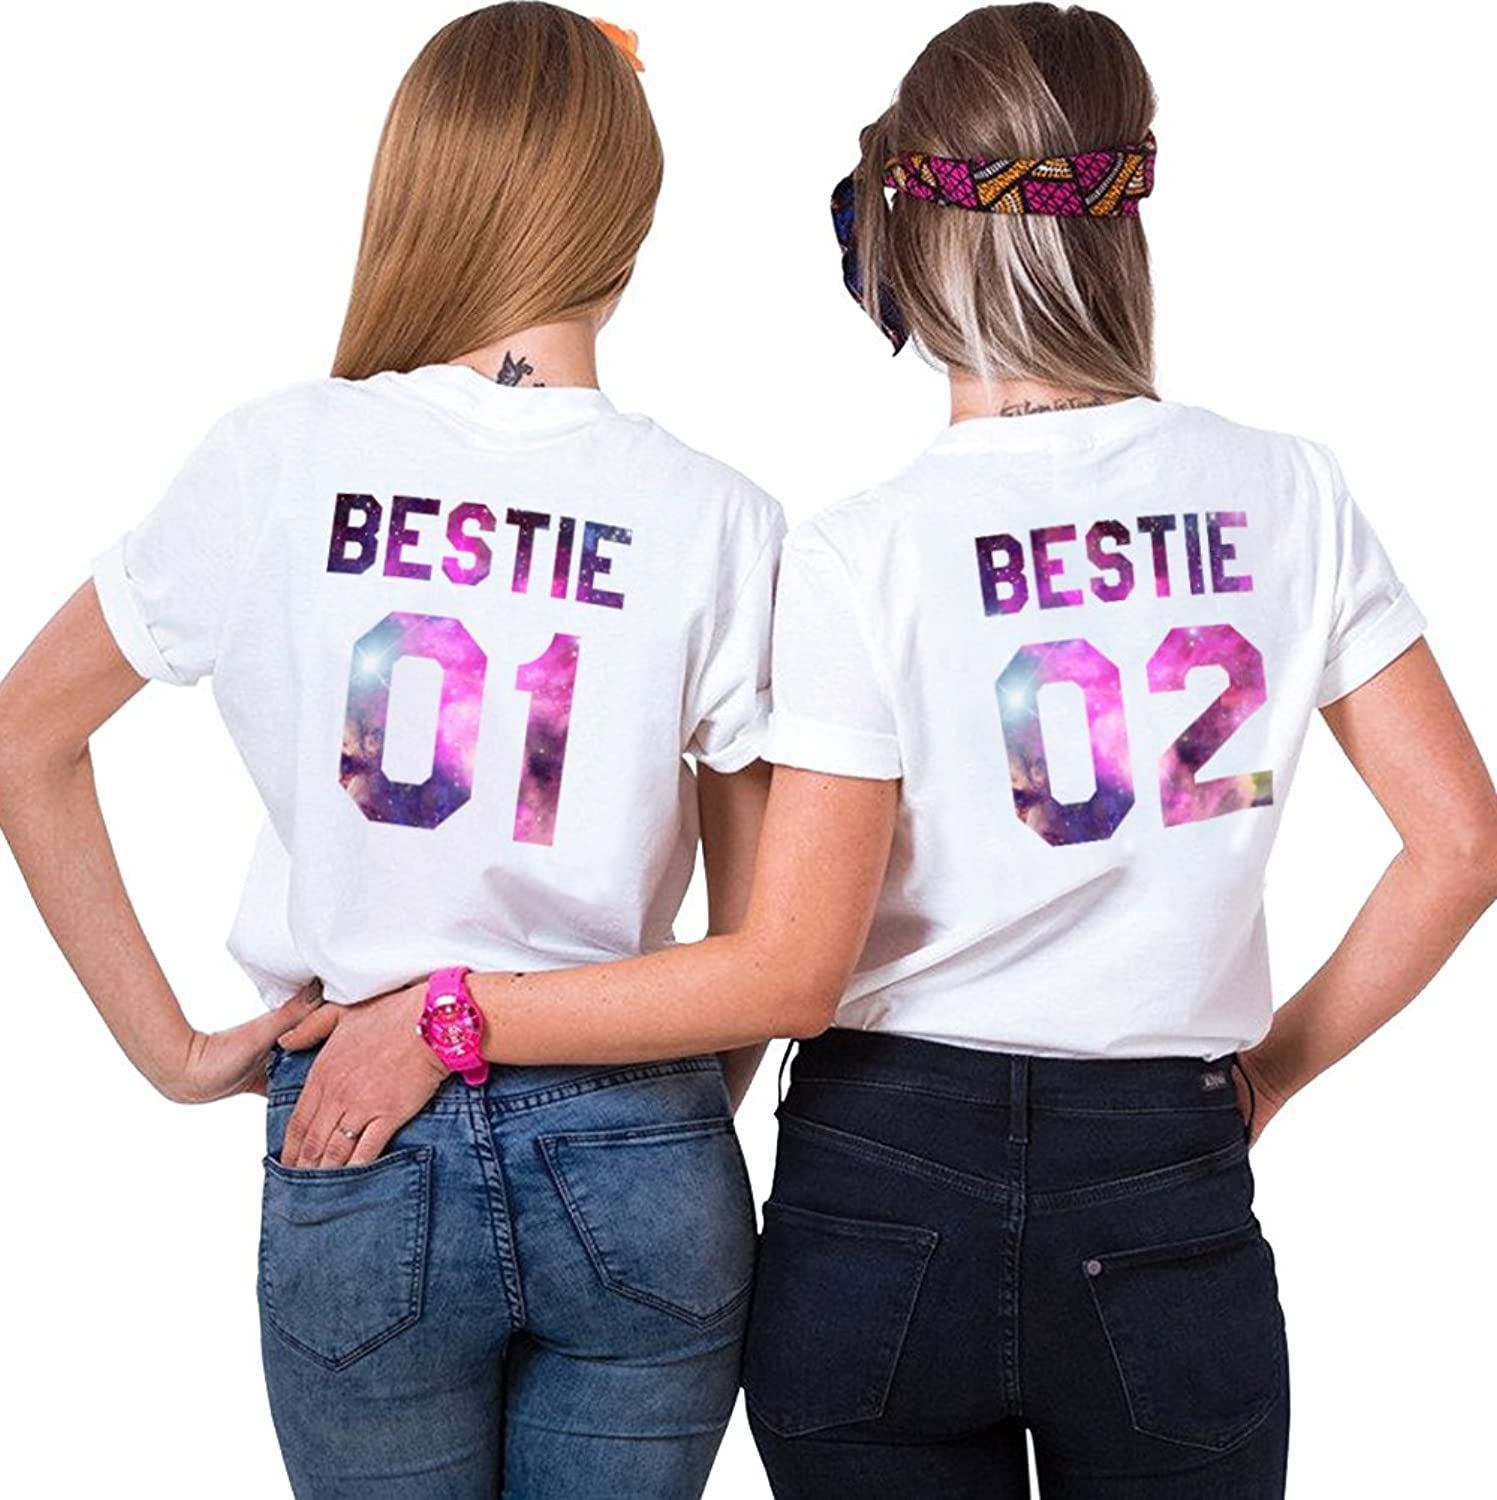 eeb83009b Two girls friends shirts for best friends,2 pack tshirts for women summer  tee. ????With great flexible and breathable and soft to wear.